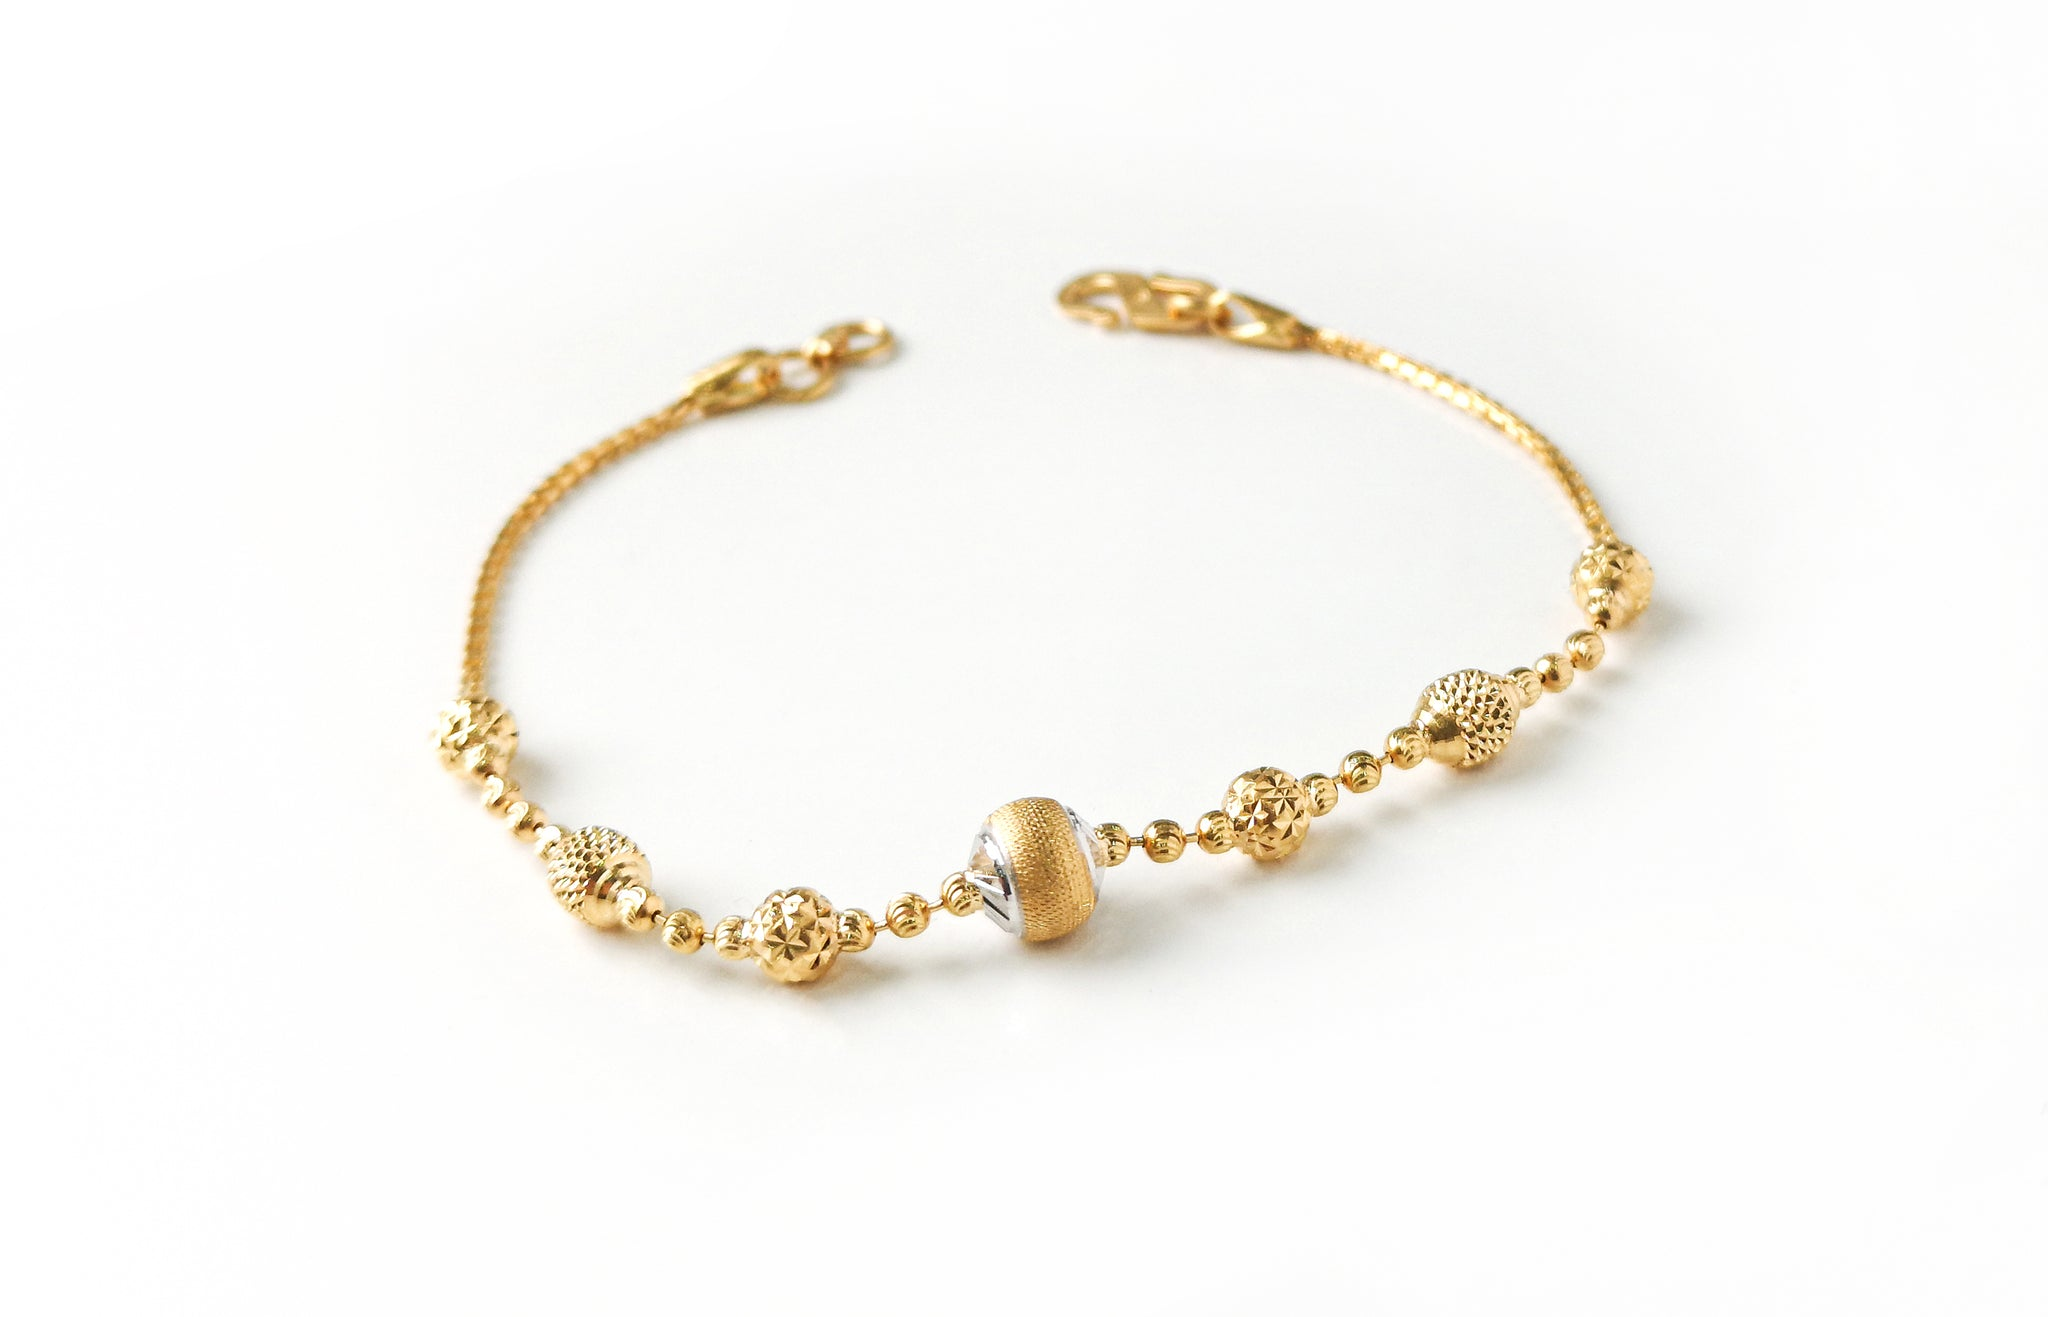 22ct Gold Bracelet with Diamond Cut and Rhodium Design (4.7g) LBR-7660